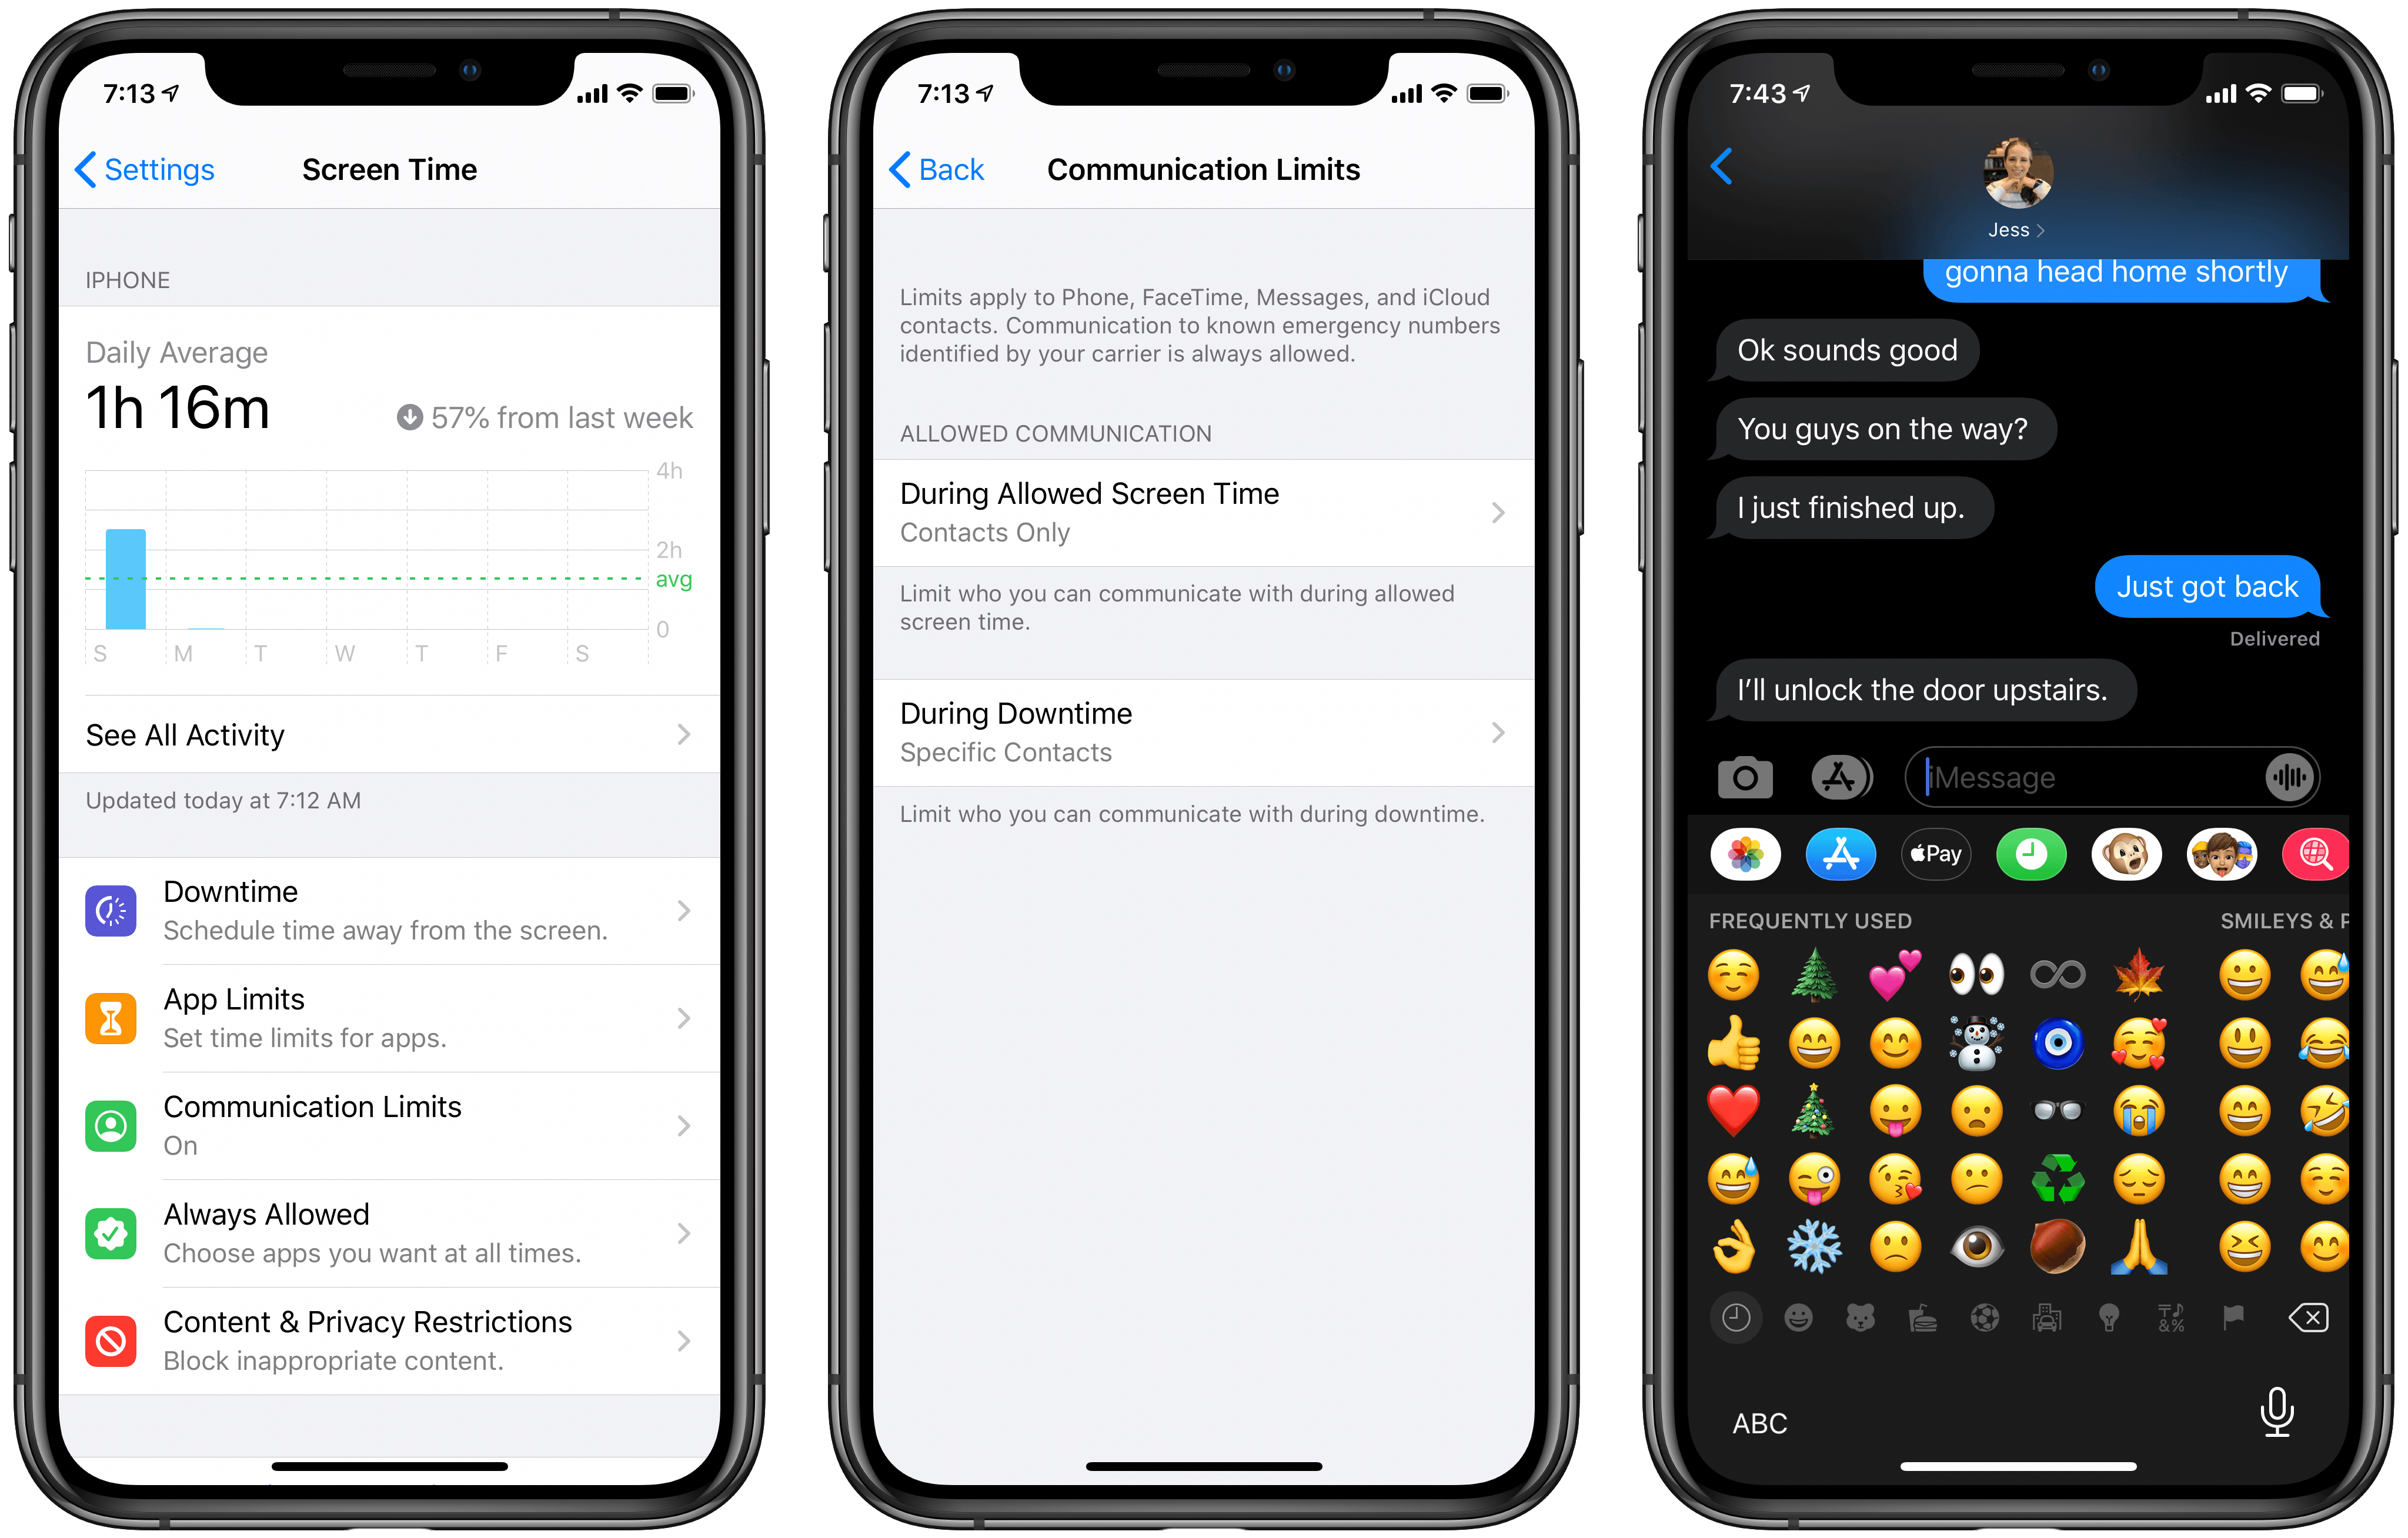 Apple launches iOS 13.3 - Screen Time and improved charging